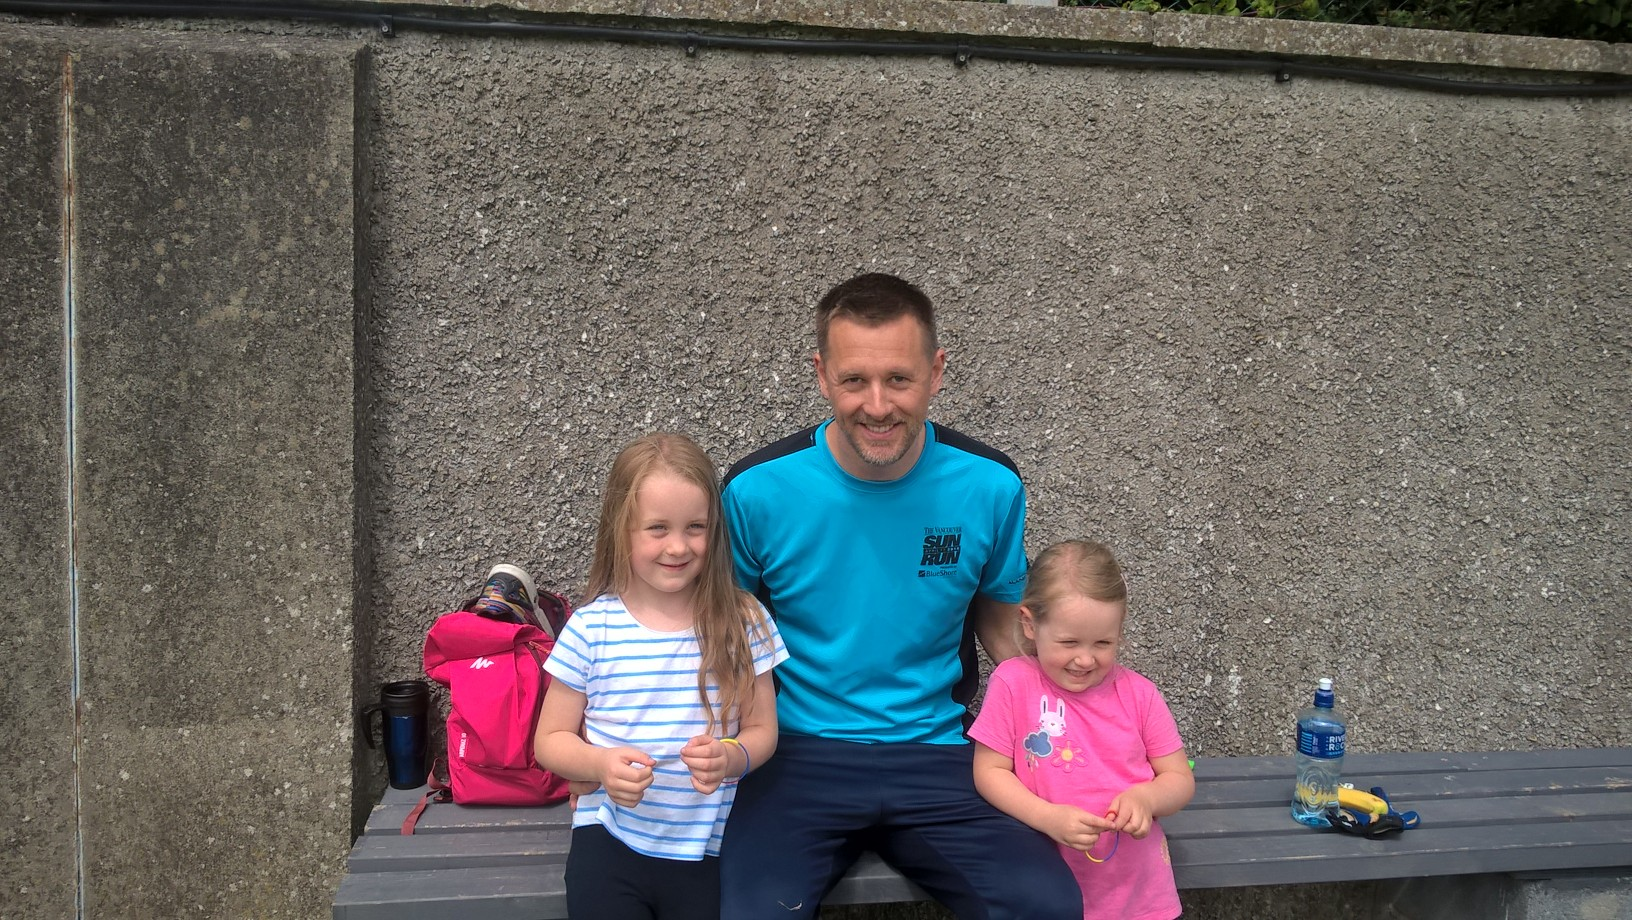 Well done to Players of the Week Peggy & Cara, seen here with their proud dad and nursery coach Shane.